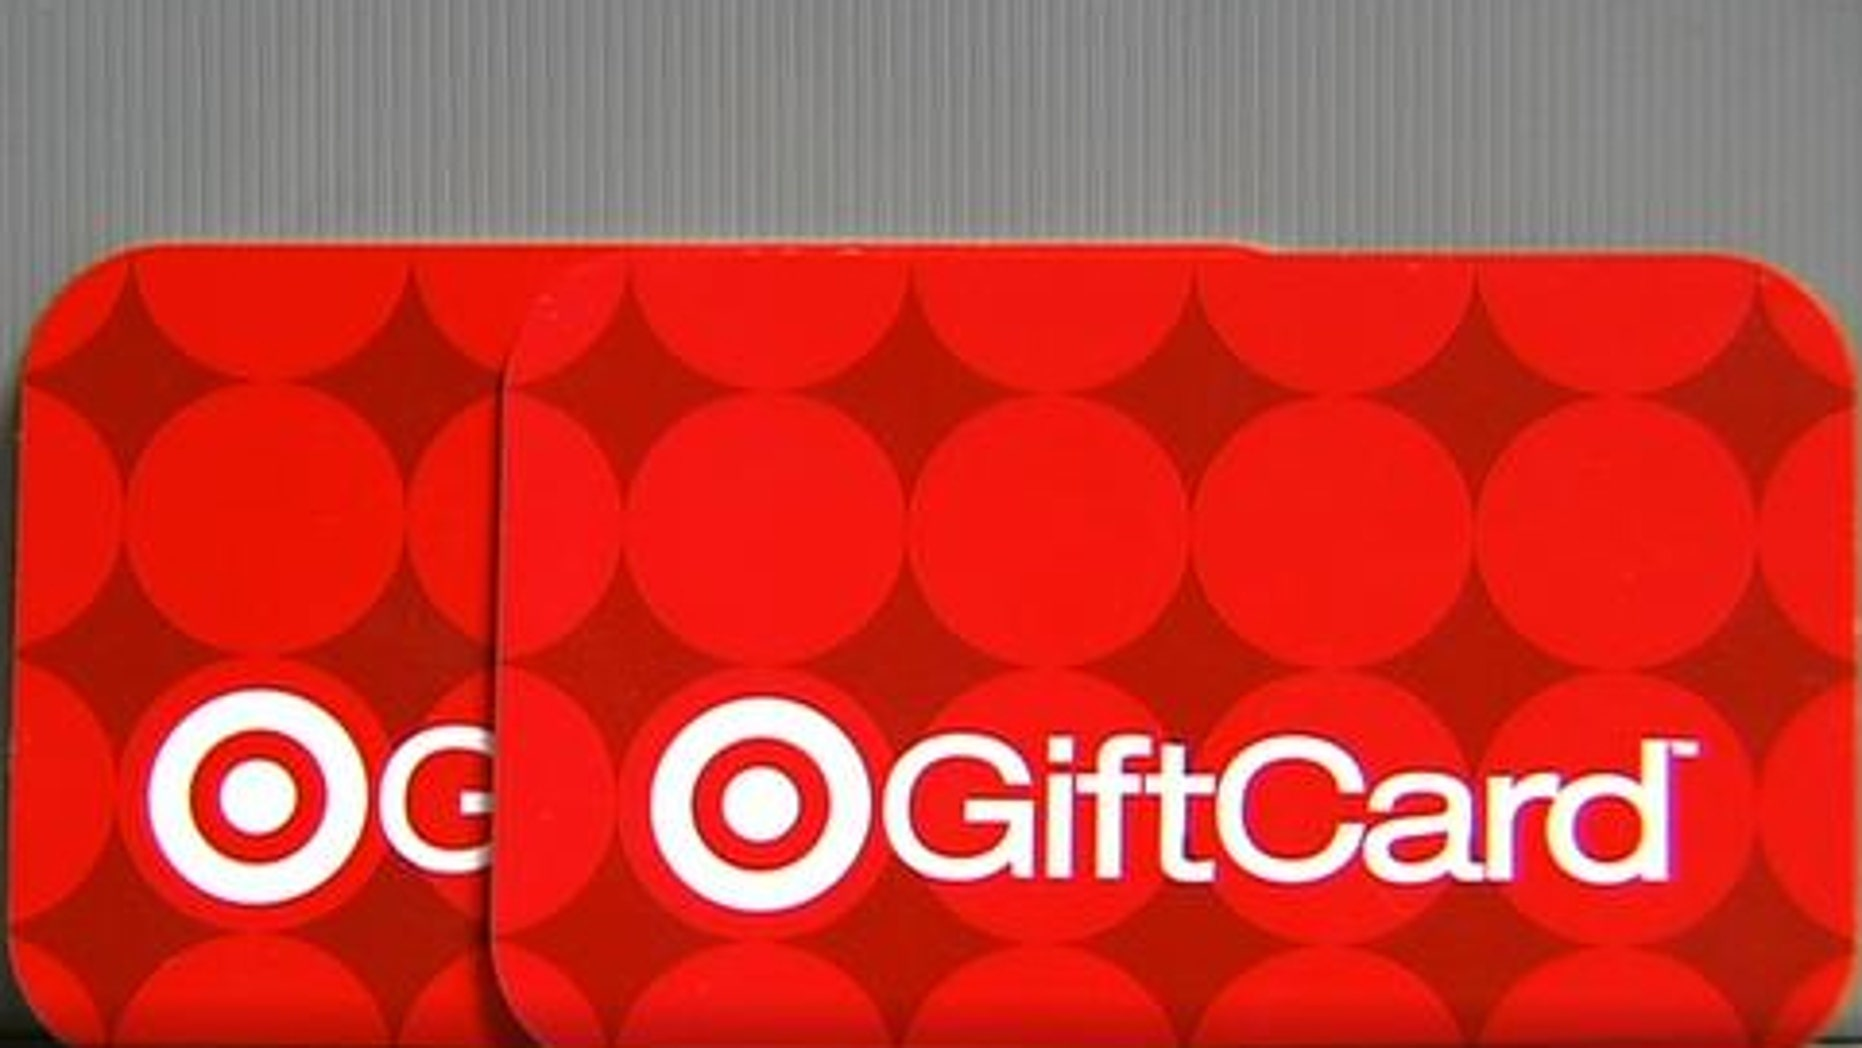 Up to 40,000 gift cards across the country couple be affected by the improper activation. (MyFoxTwinCities.com)